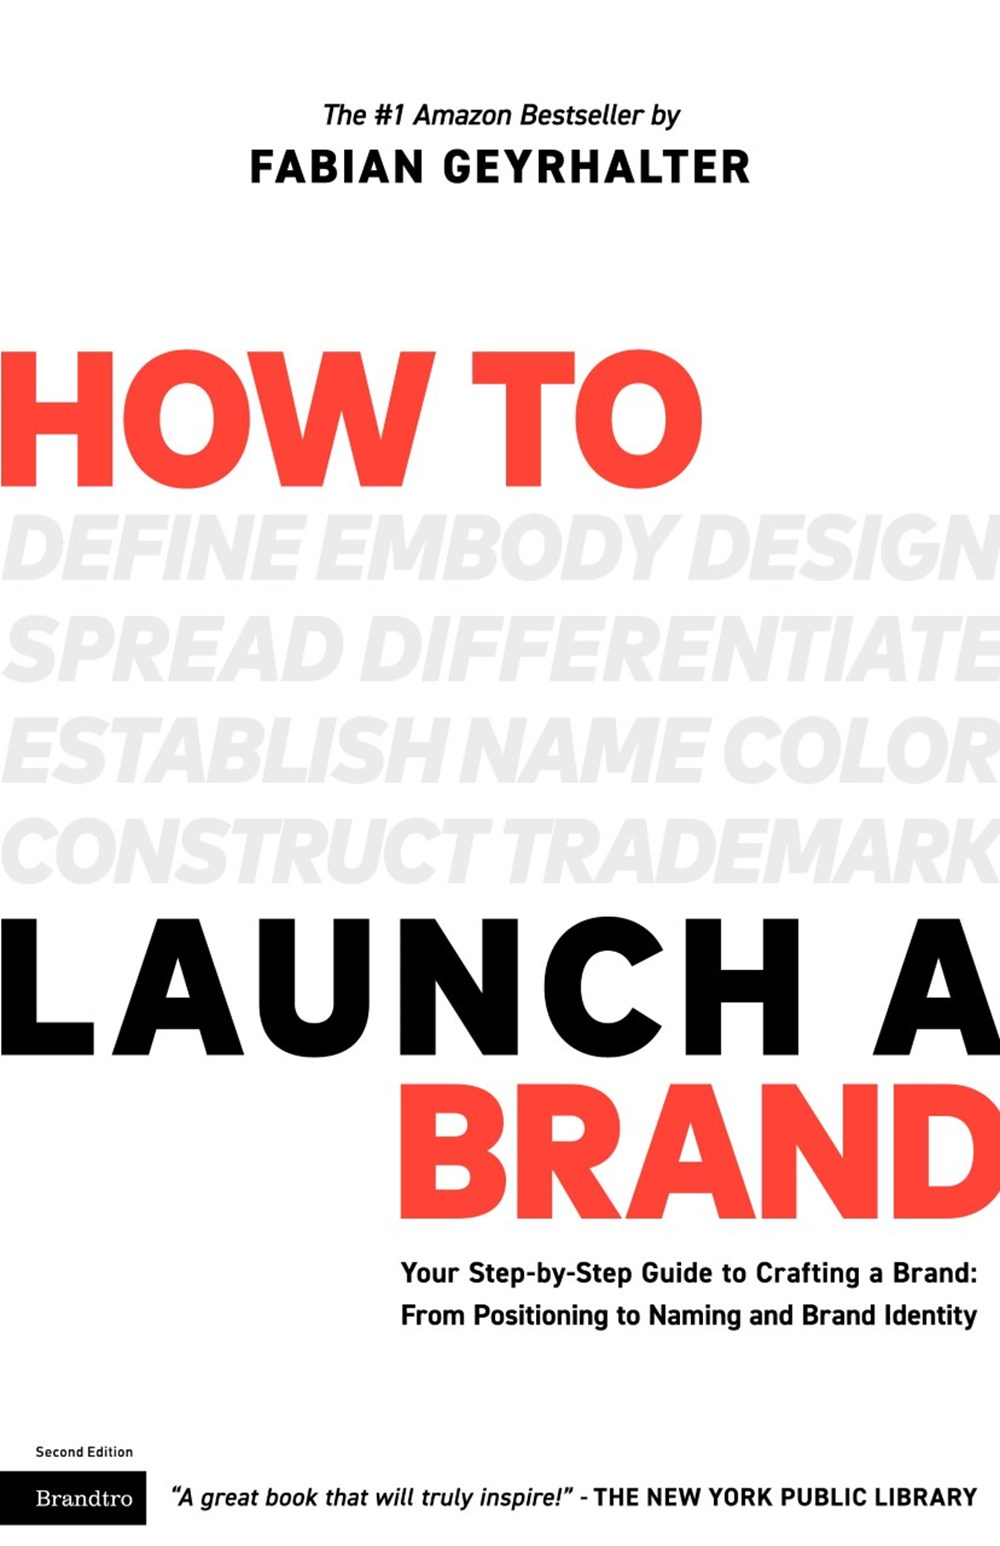 How to Launch a Brand (2nd Edition) Your Step-by-Step Guide to Crafting a Brand: From Positioning to